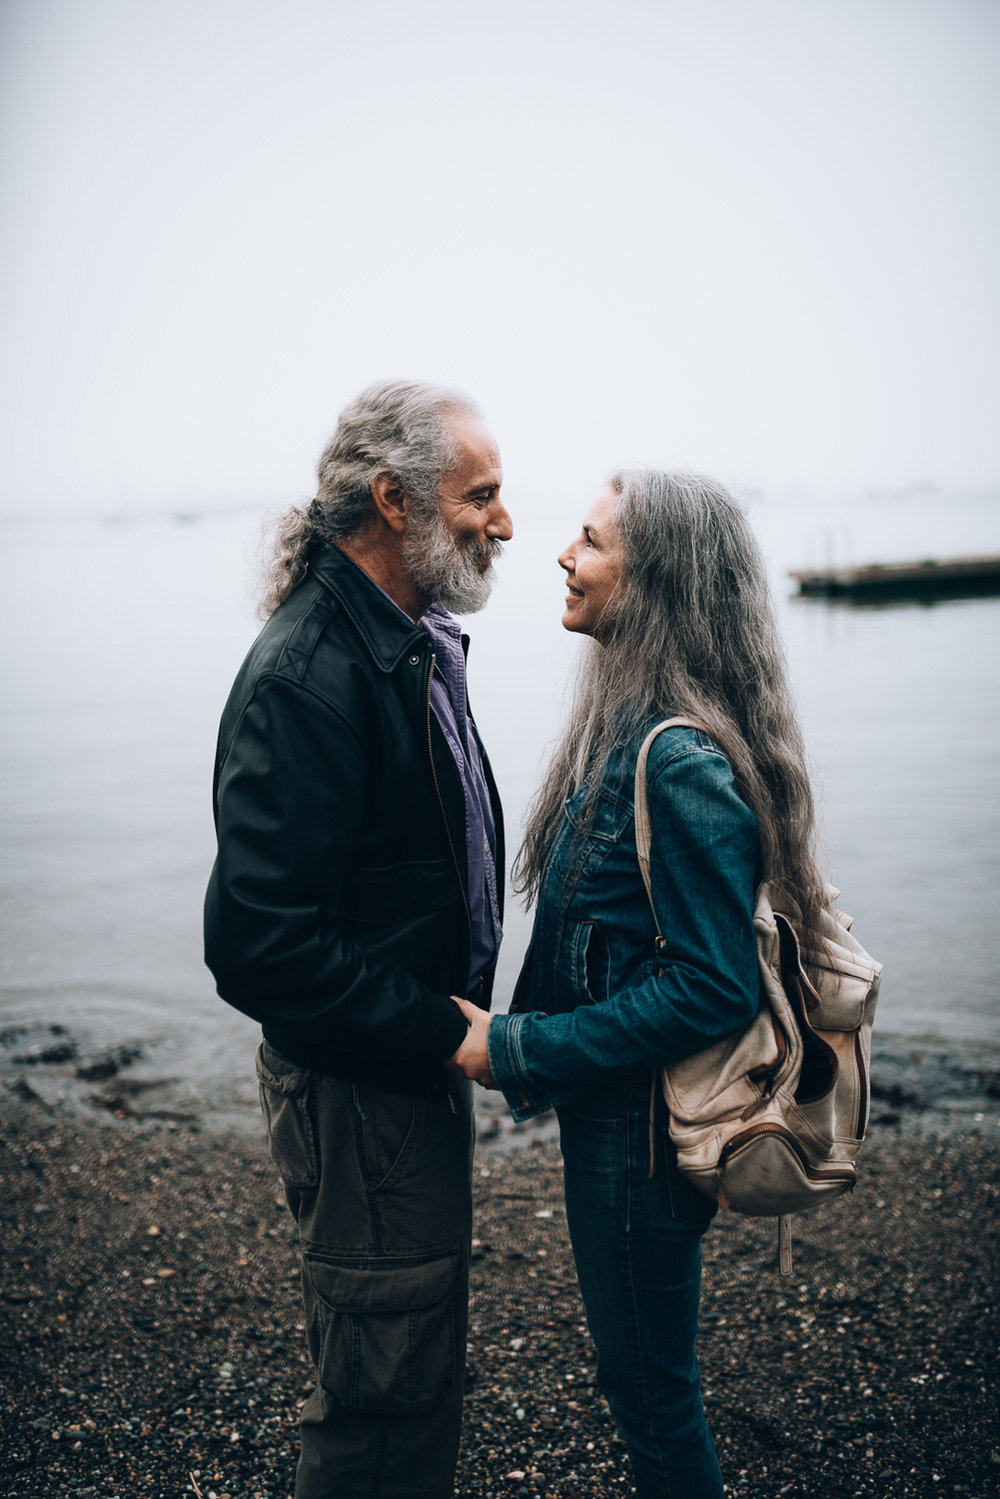 A couple who has been married for over 30 years sharing an intimate look at Laite Beach in Camden, Maine.